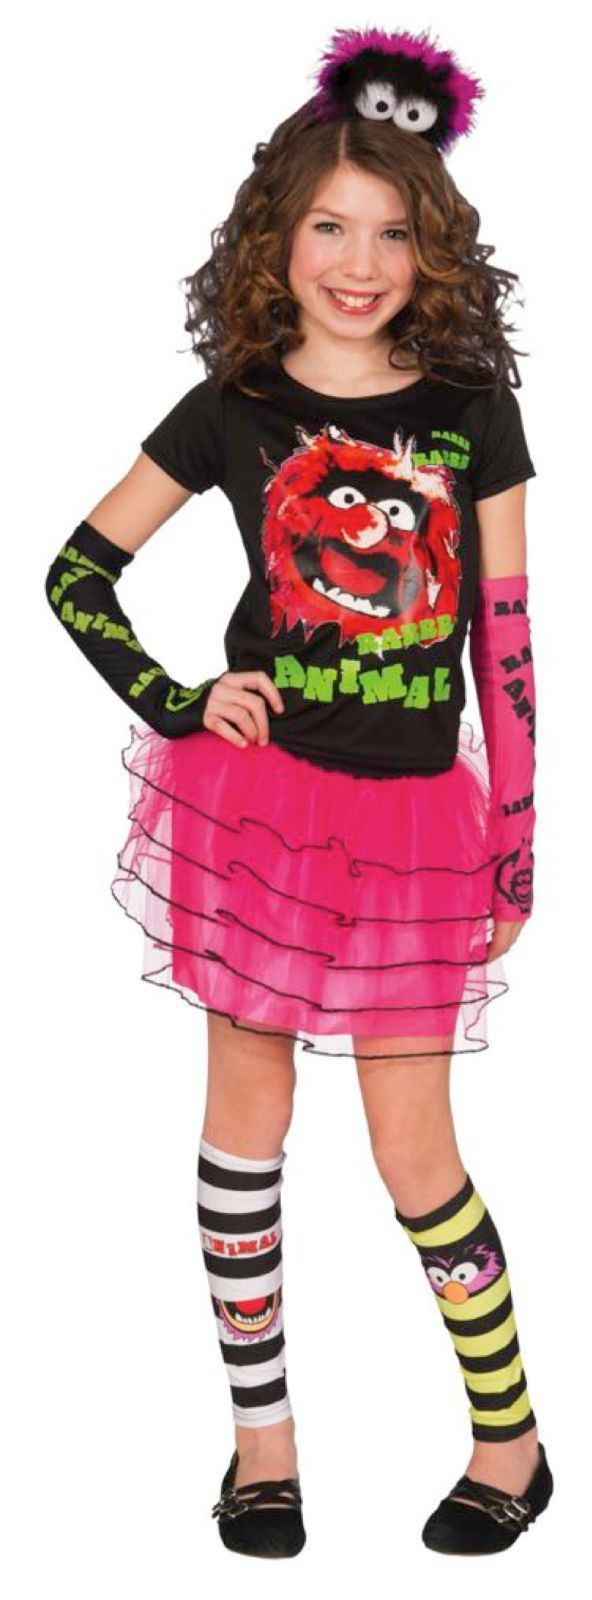 Image 0 of Too Cute Pink & Black Animal Muppet Costume Fashionista Set for Girls, One Size